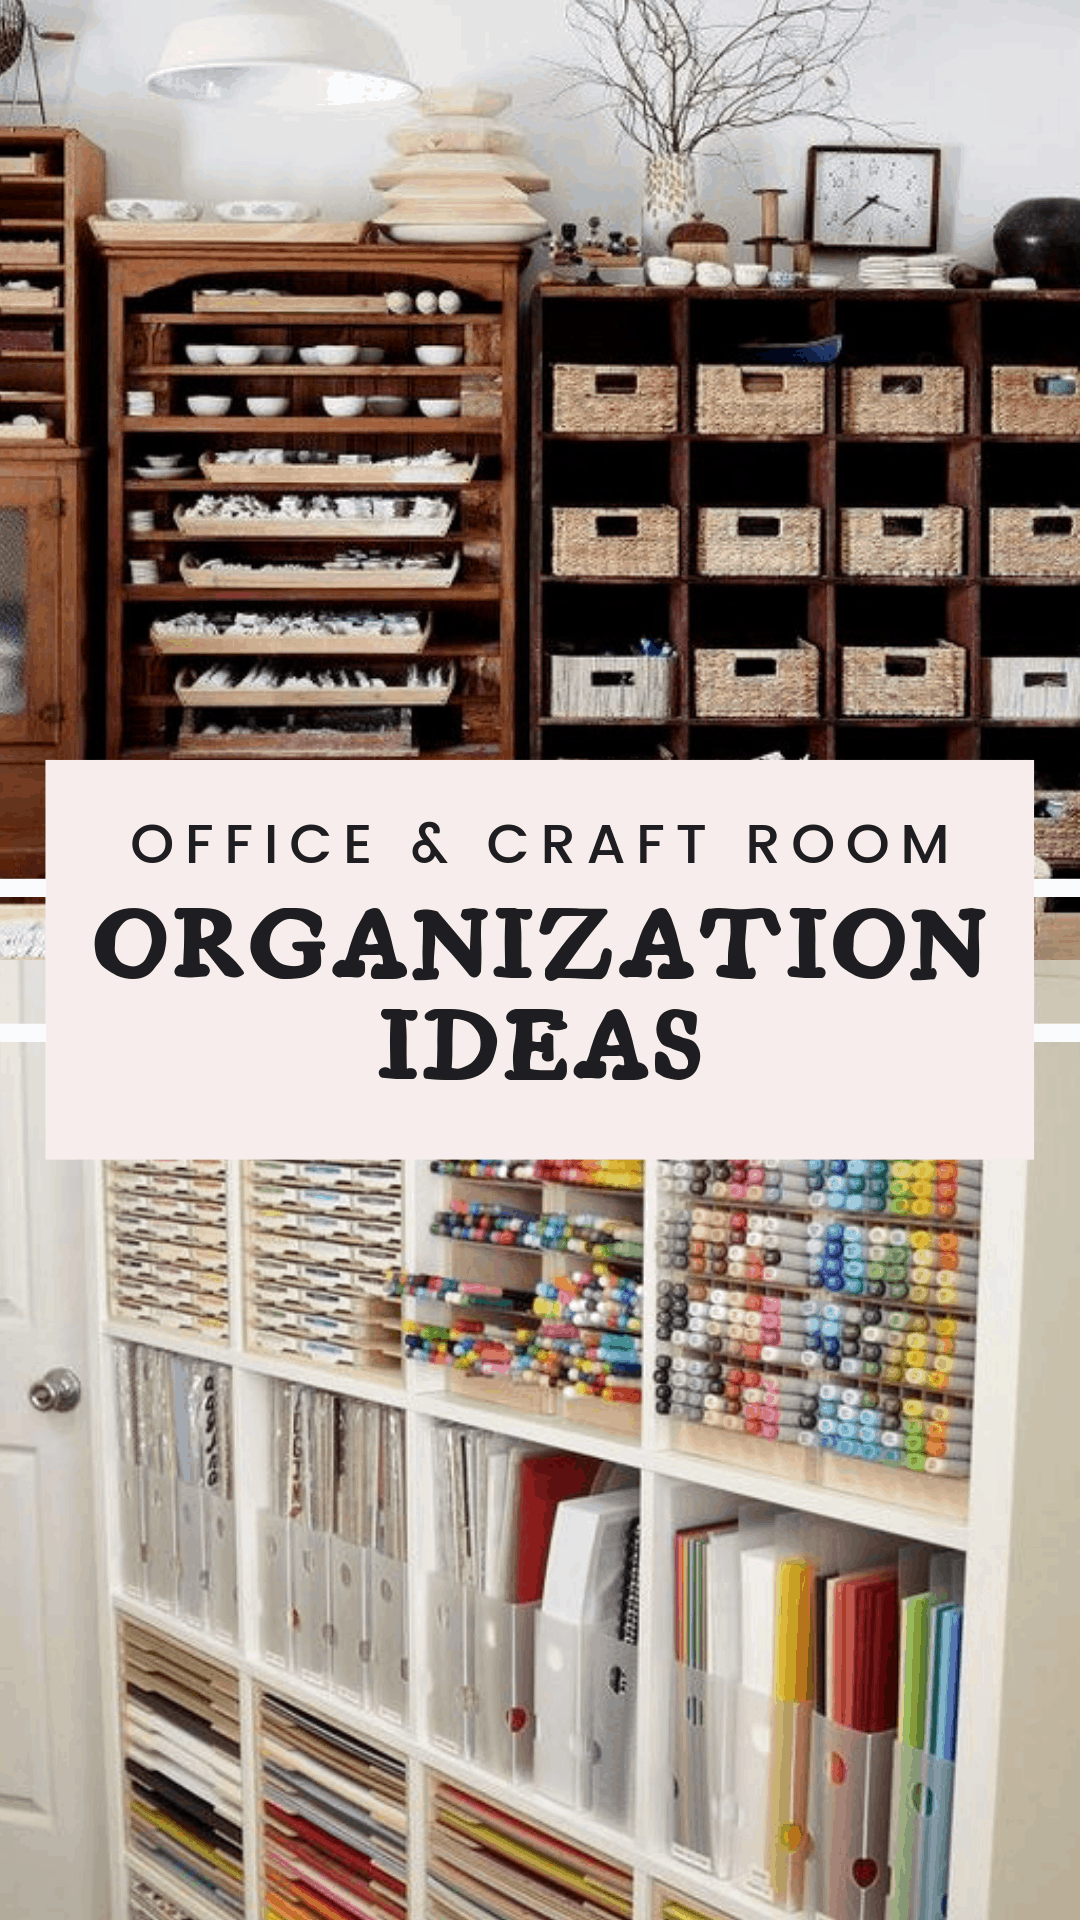 Office & Craft Room Storage & Organization